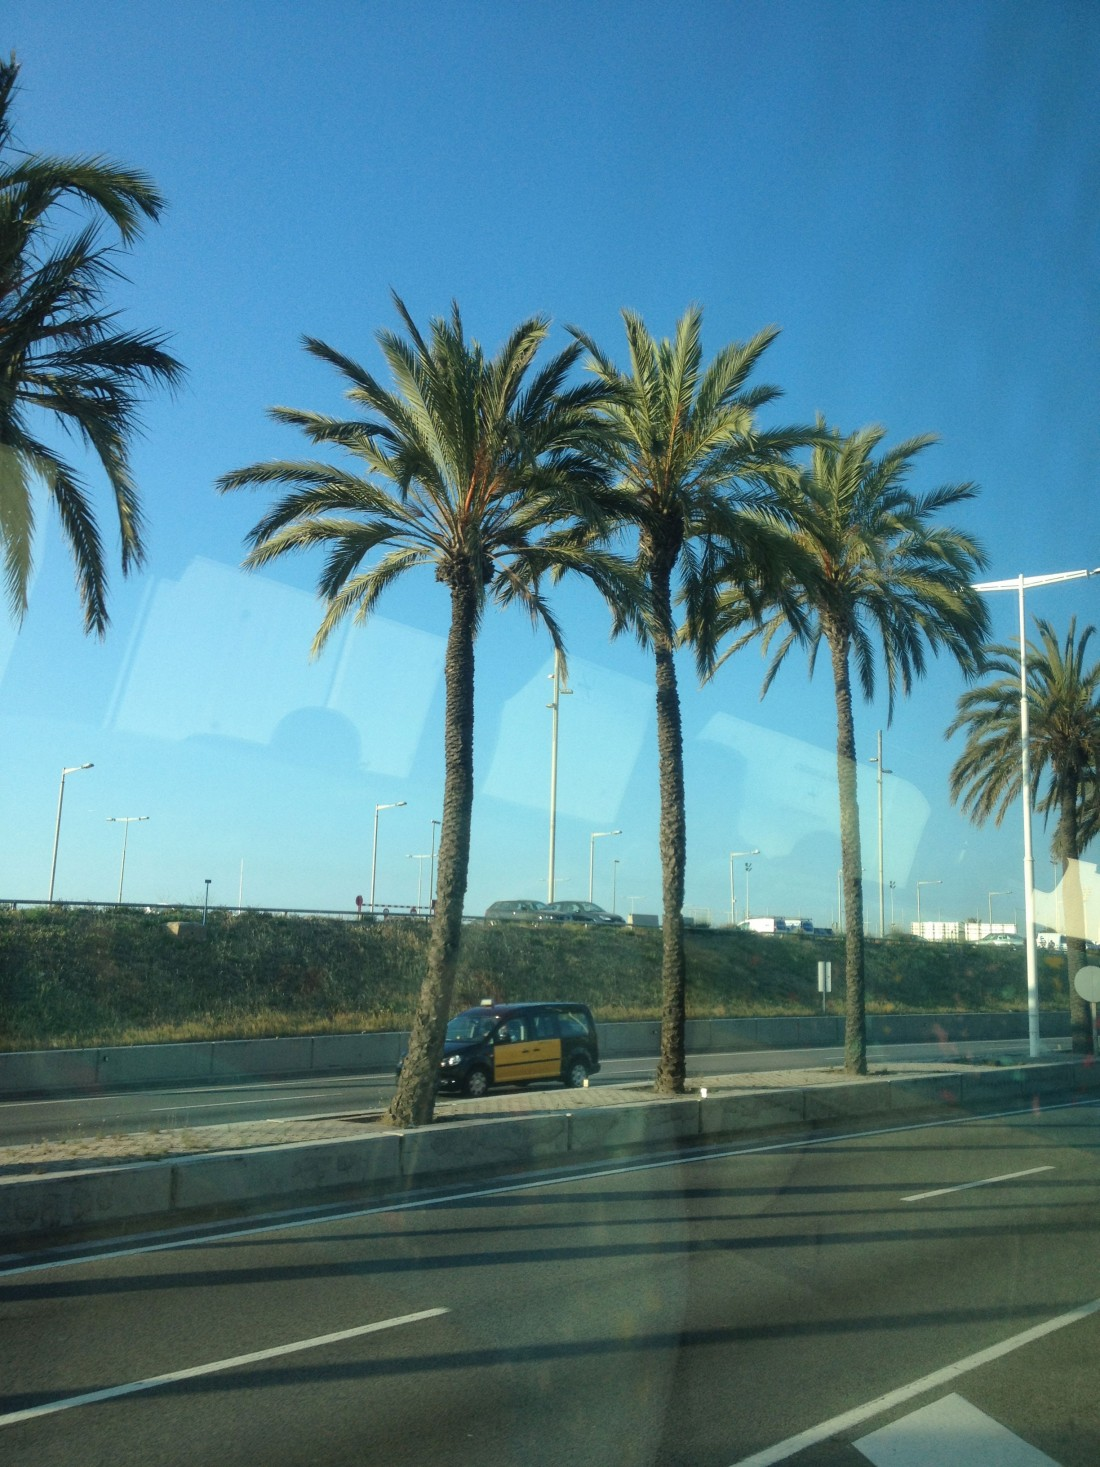 Five palms and a cab